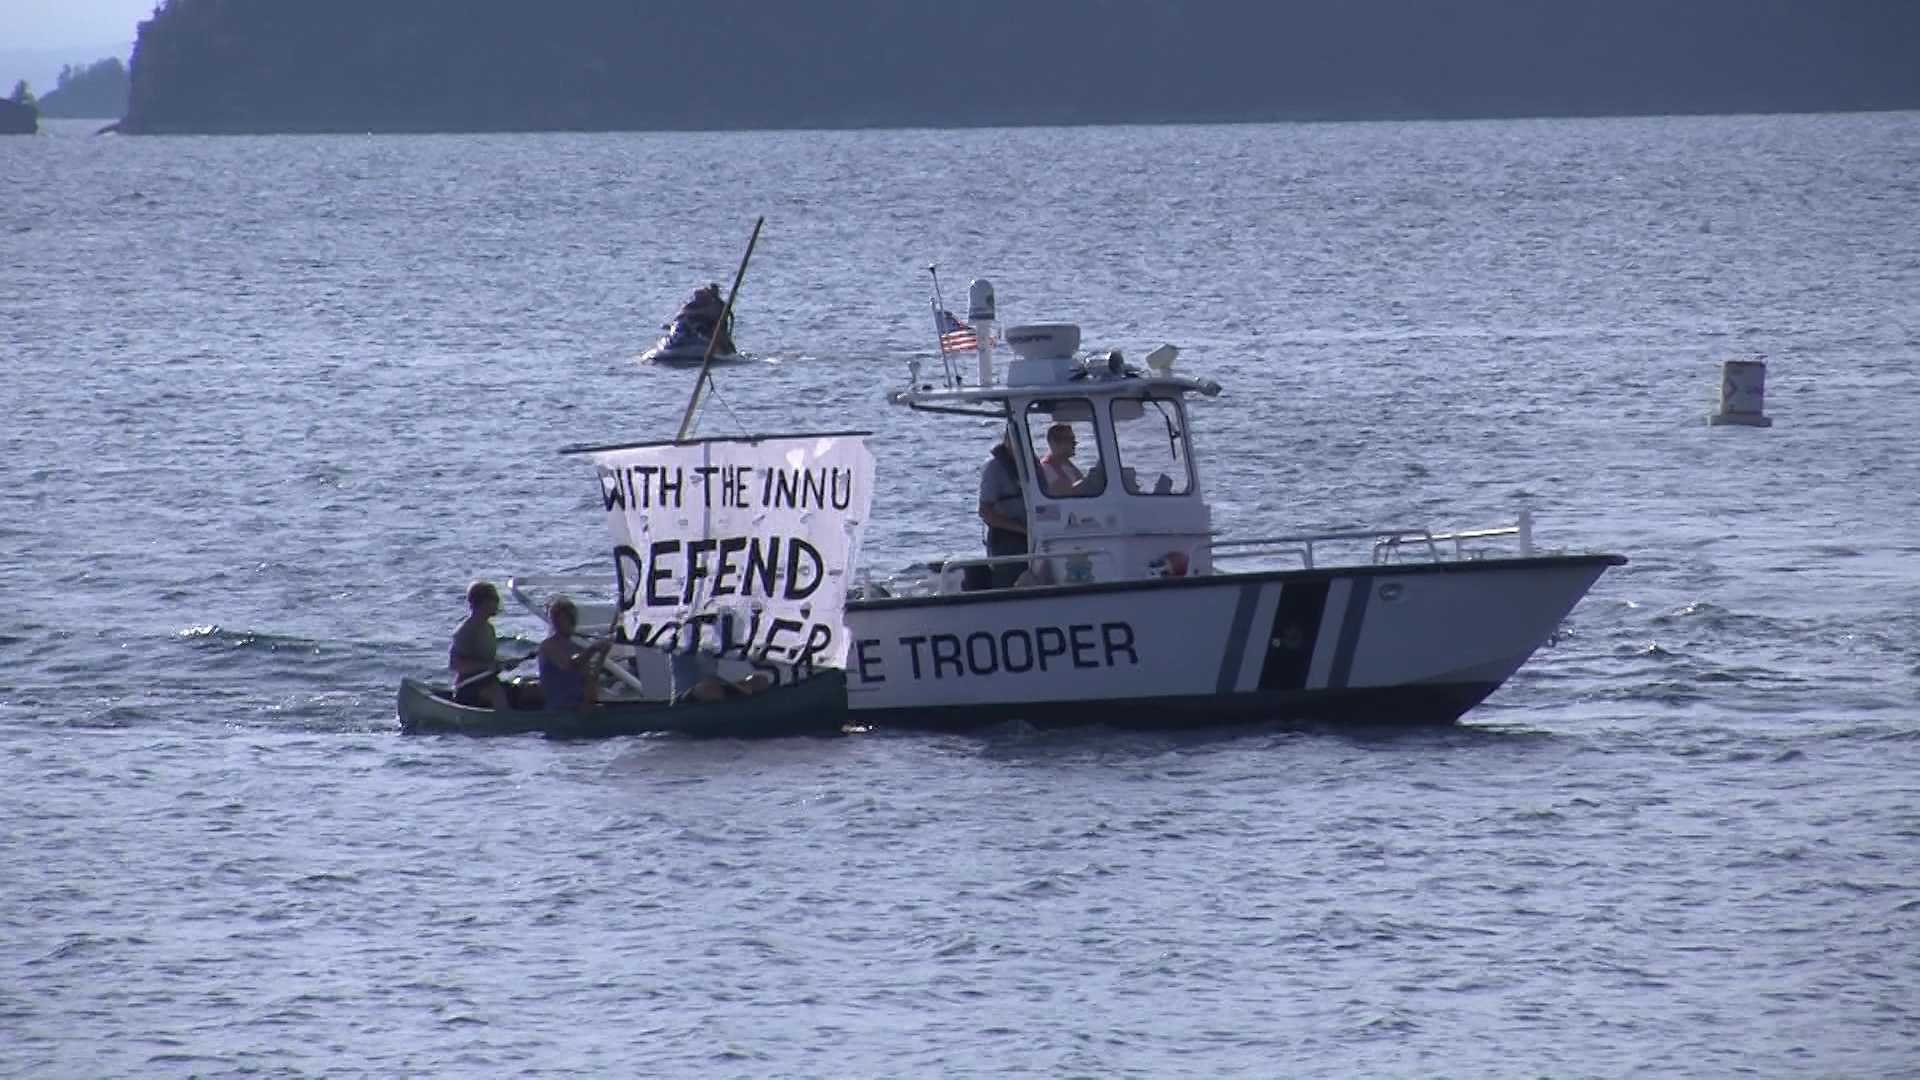 073012 Summit protesters take to land and sea